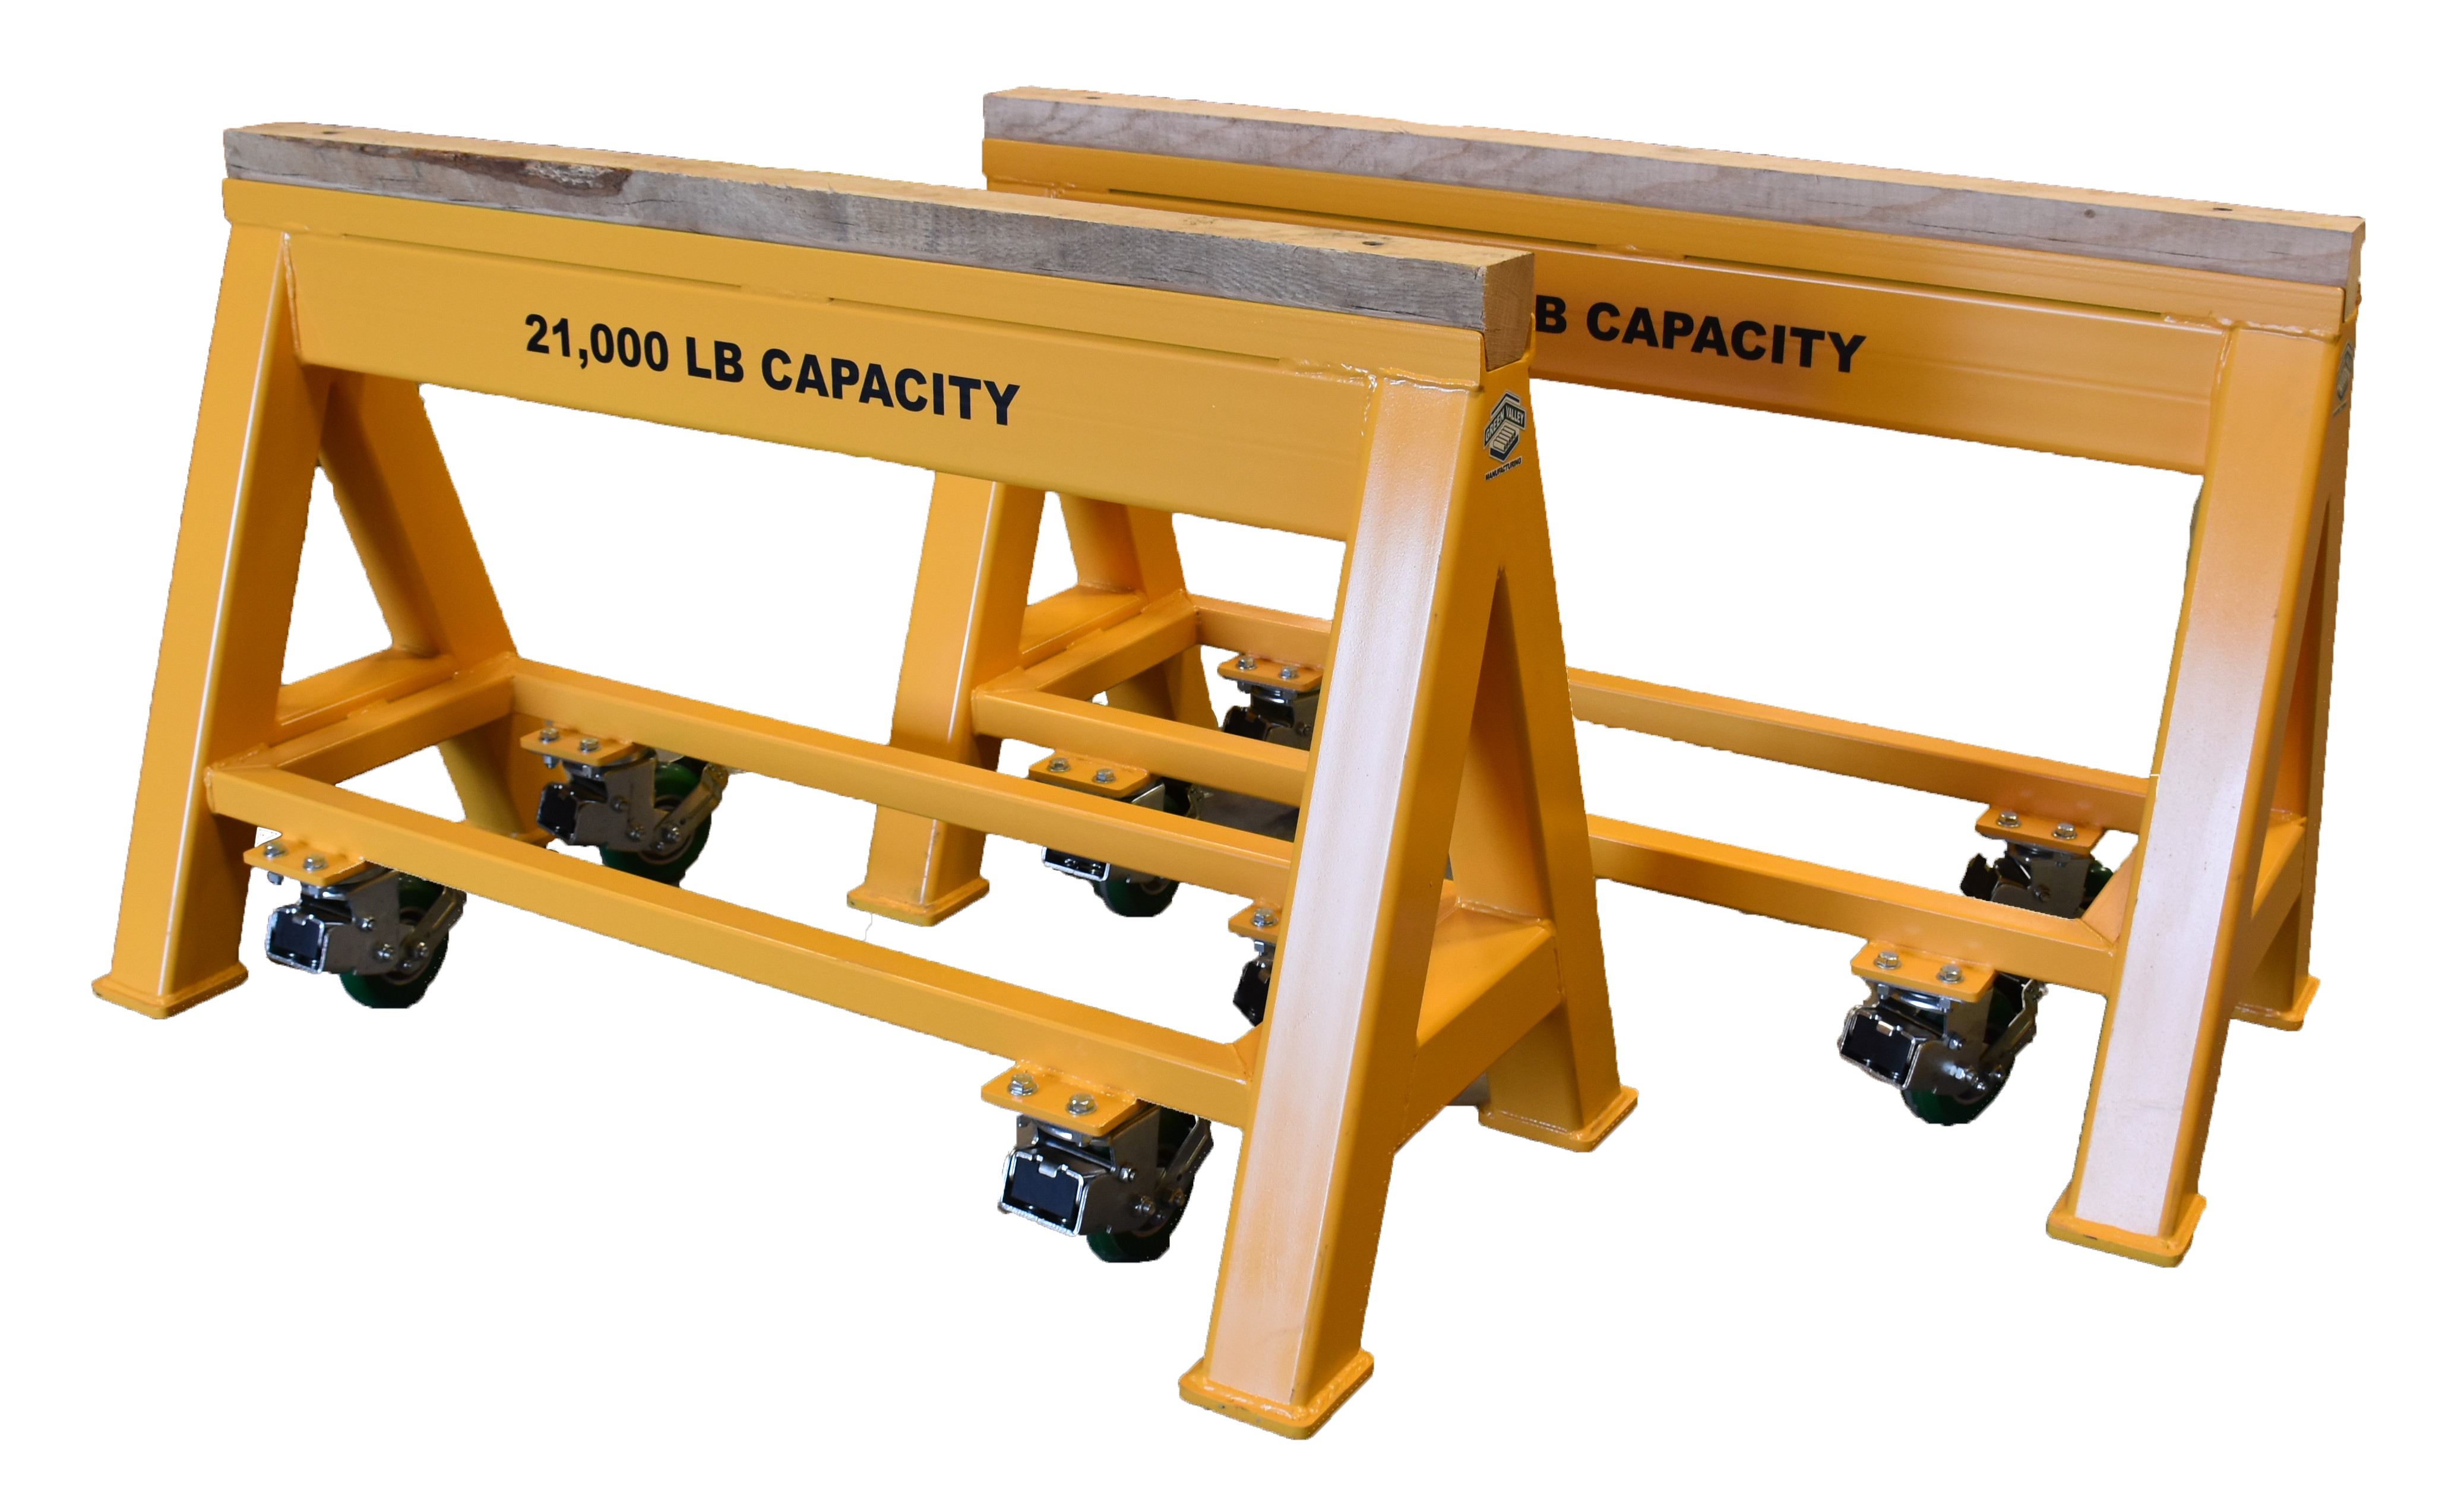 heavy duty steel sawhorse 21,000 LB. Wood Top Spring Loaded Compression Caster Industrial steel sawhorse (184248)